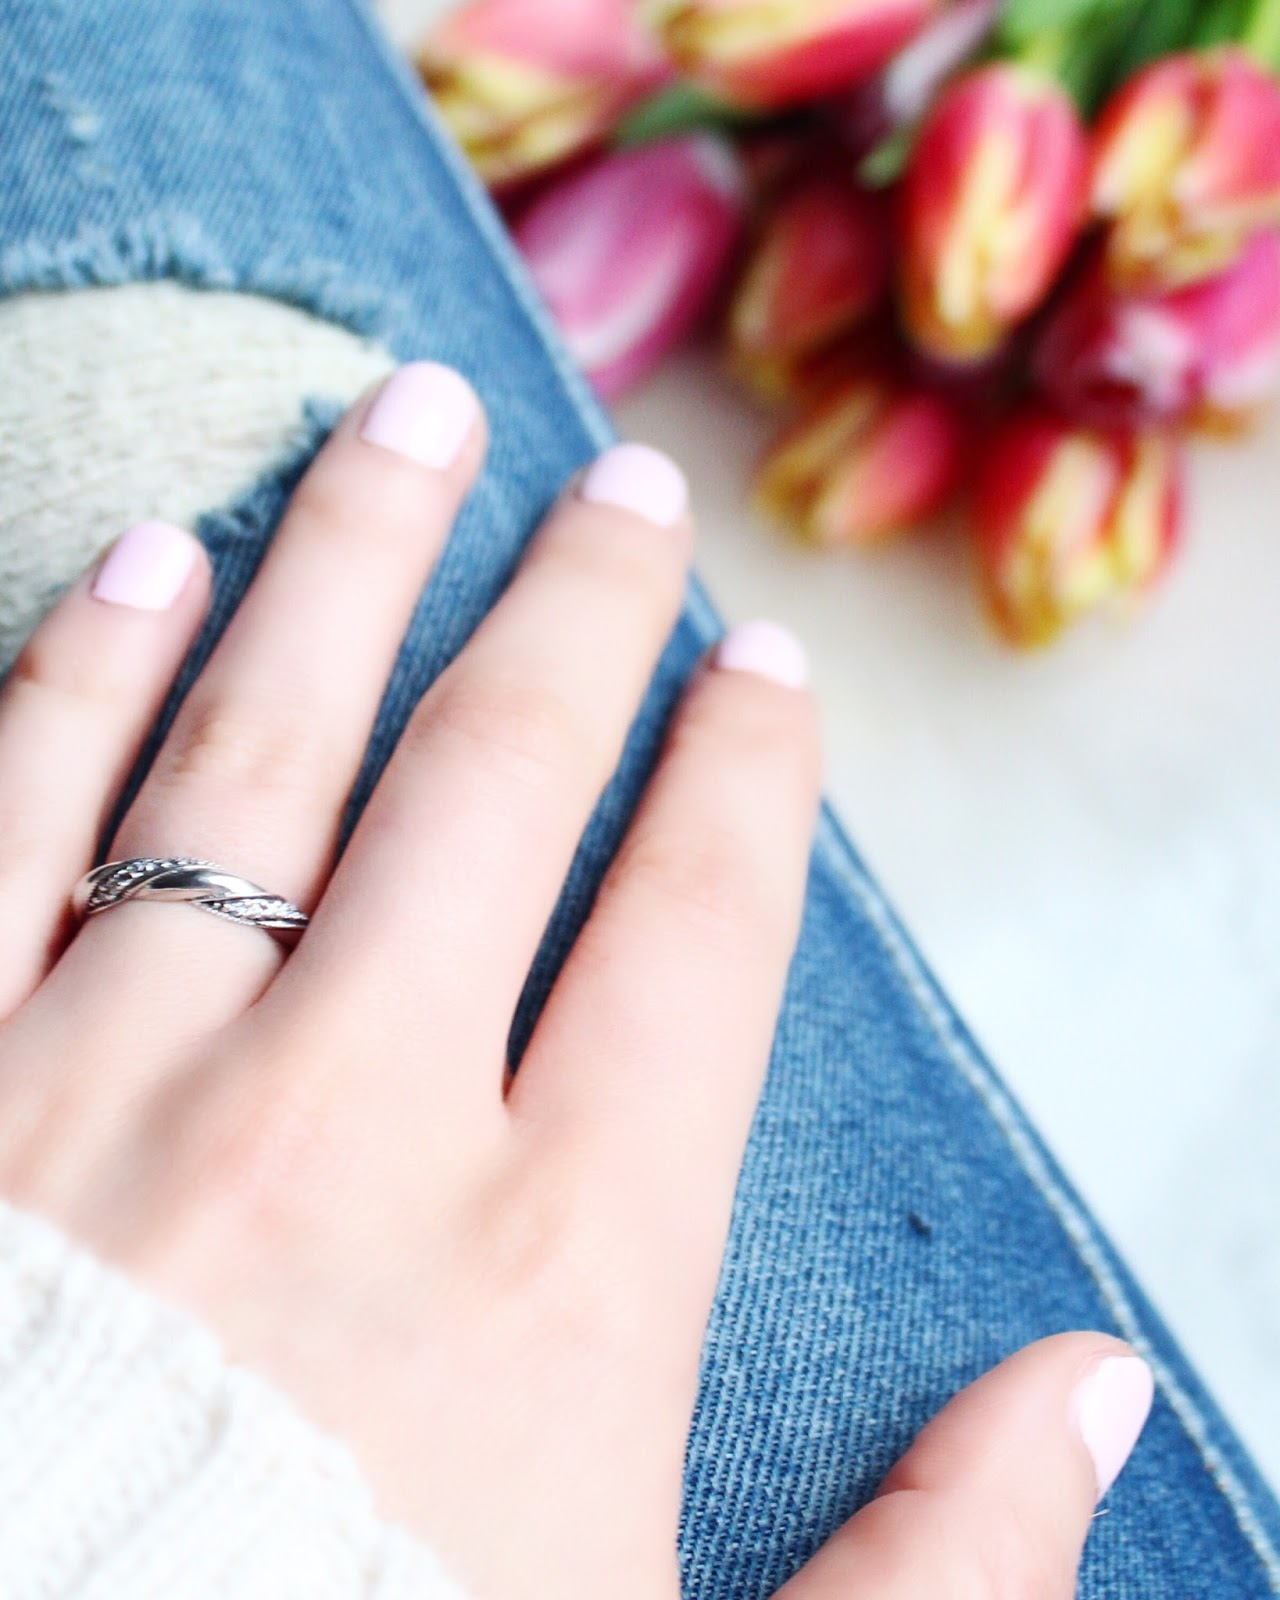 e7d53f708 Valentine's Day with Pandora - Ribbon of Love ring | chrissabella